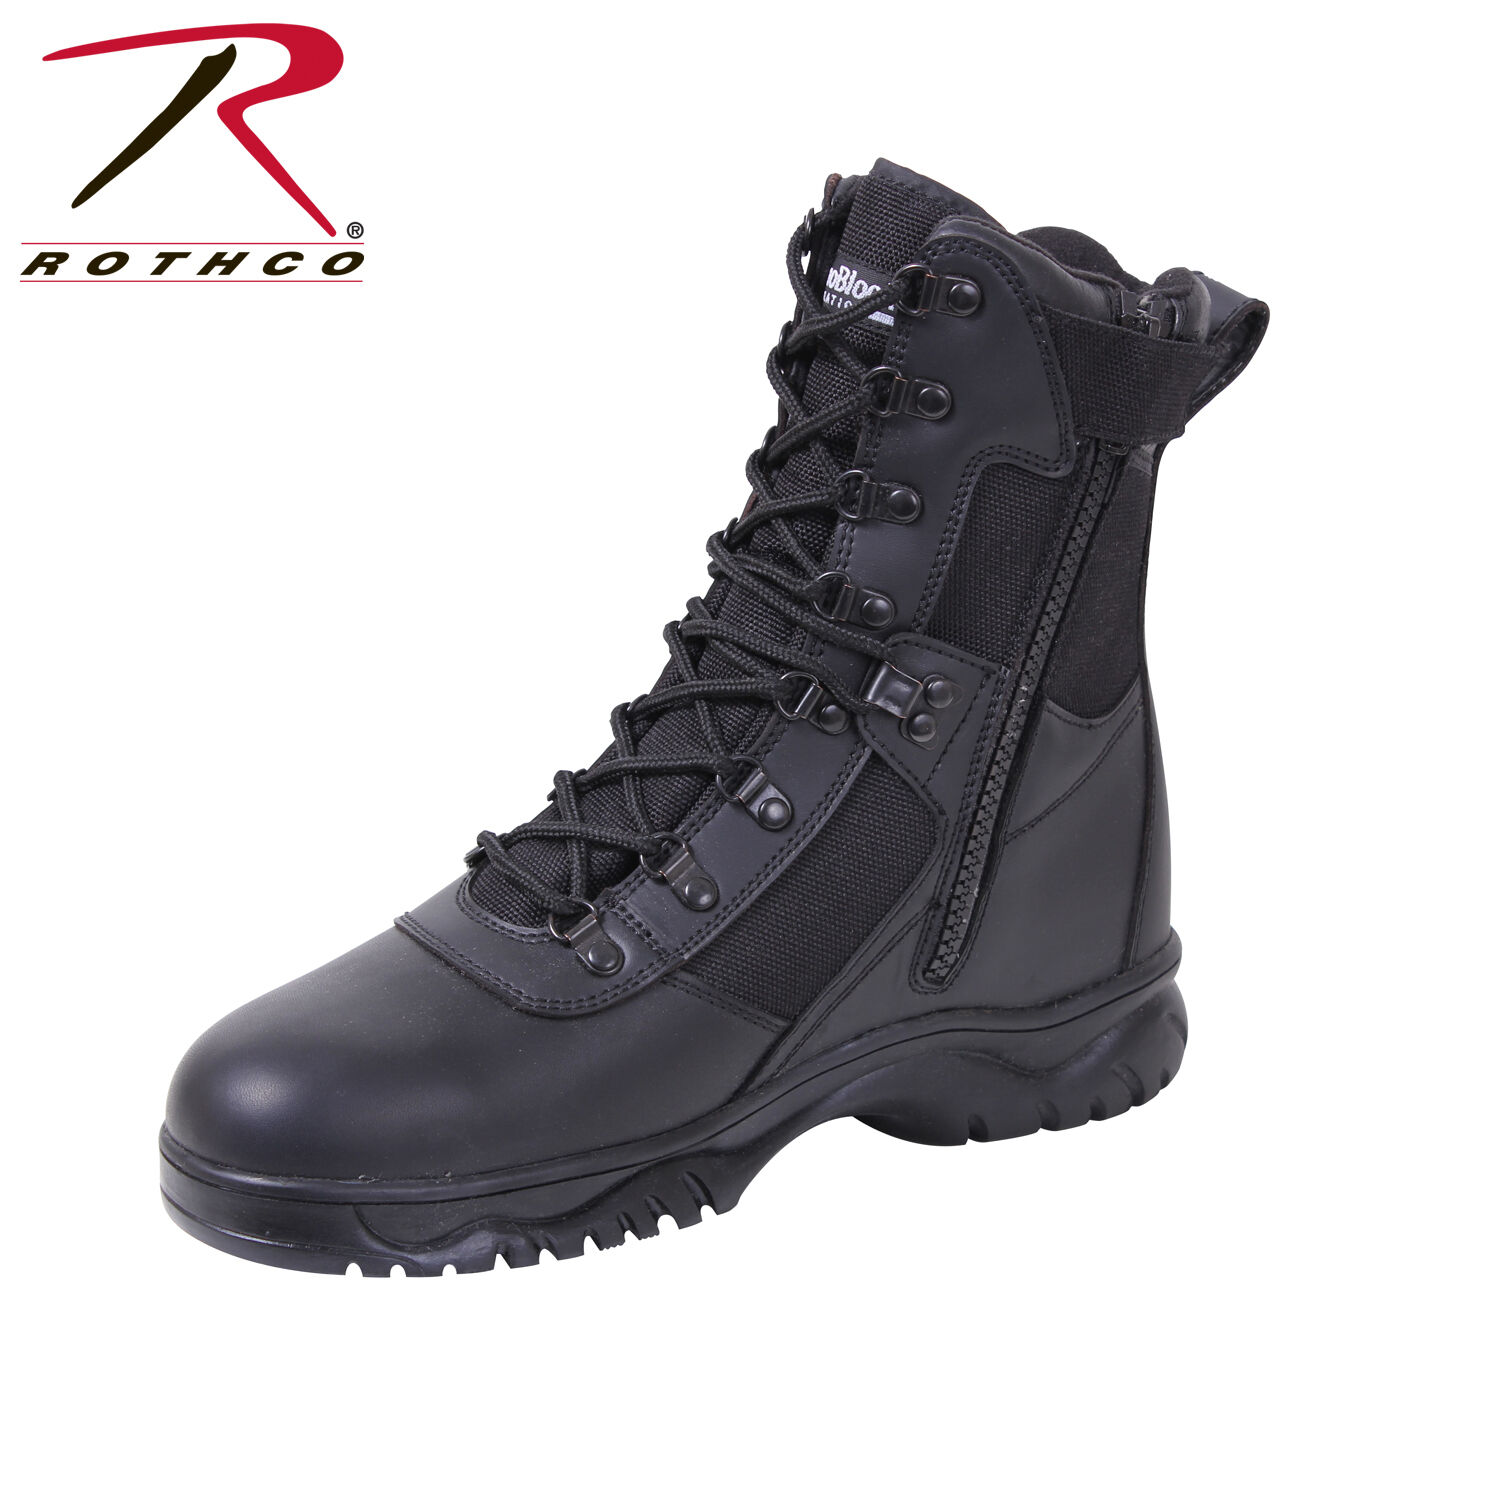 Rothco 5073 Insulated 8 Inch Side Zip Tactical Boot - Black